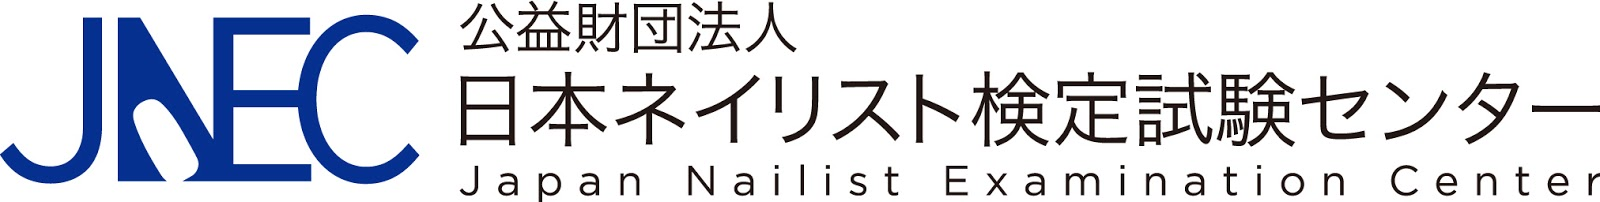 http://www.nail-kentei.or.jp/